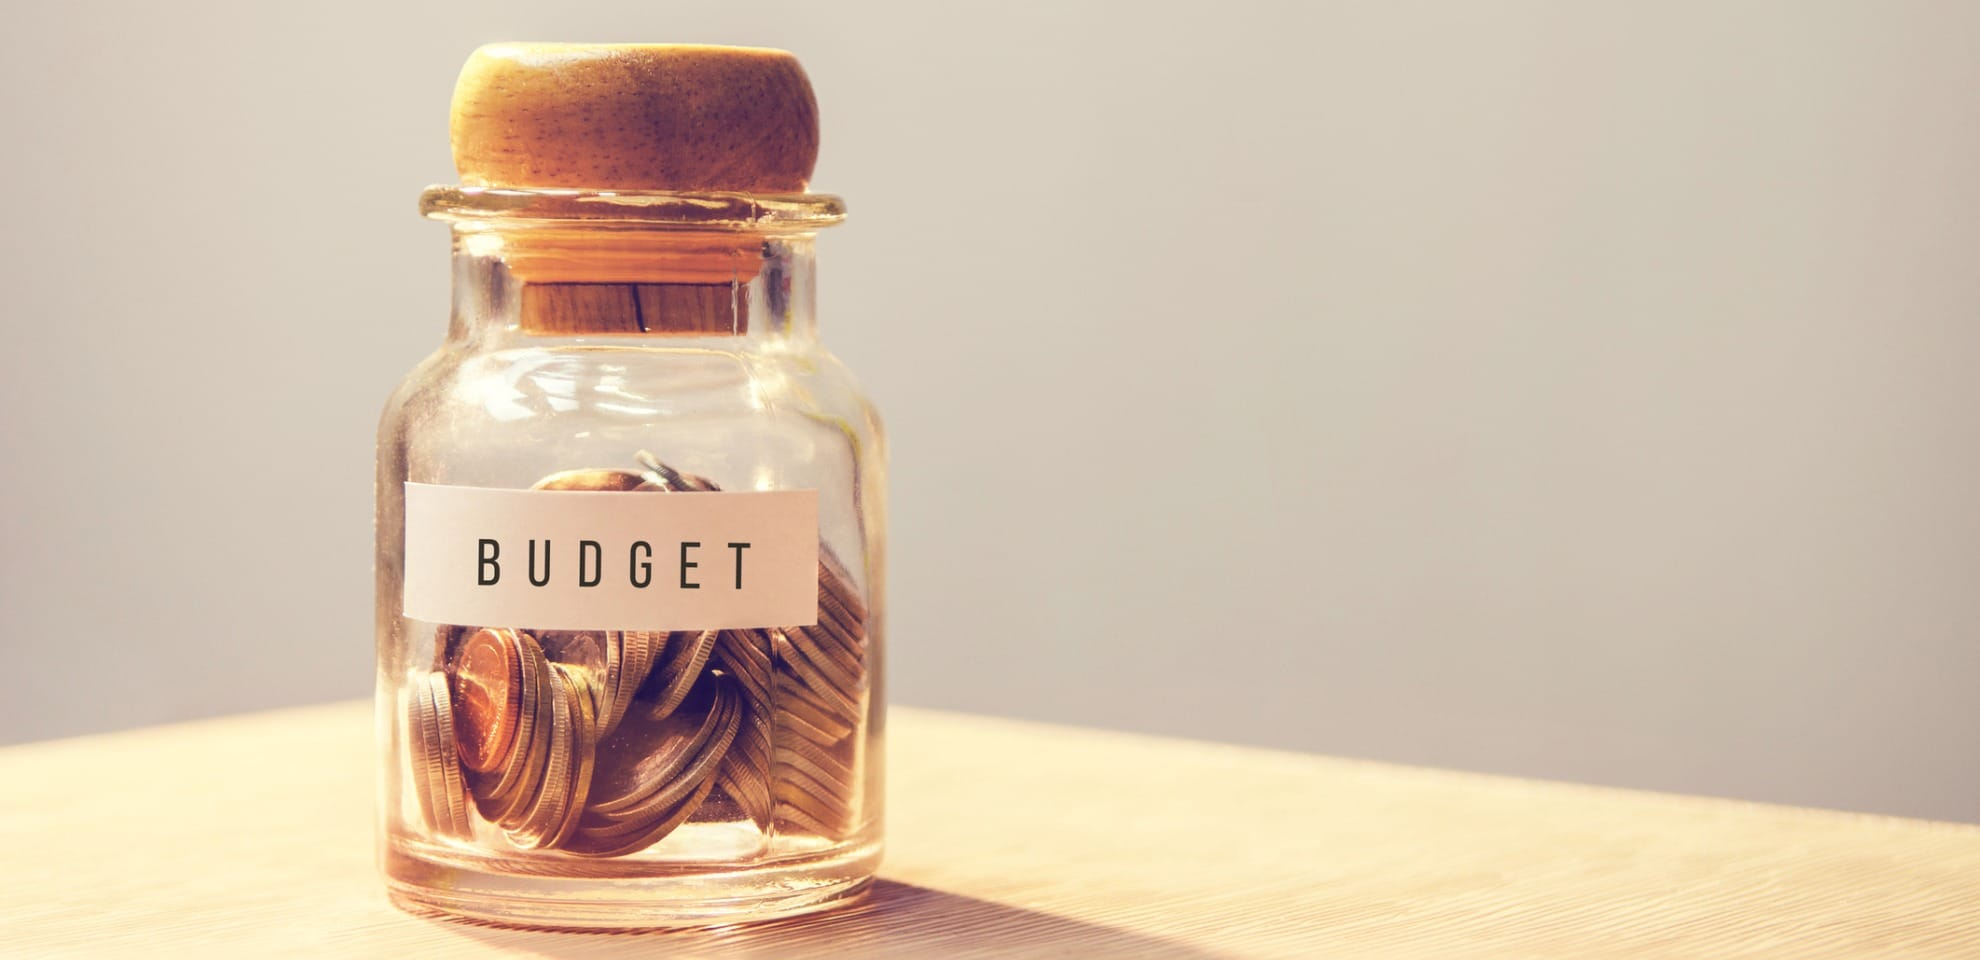 5 Budgeting Tips to Make 2018 the Best Year Yet for Your Business